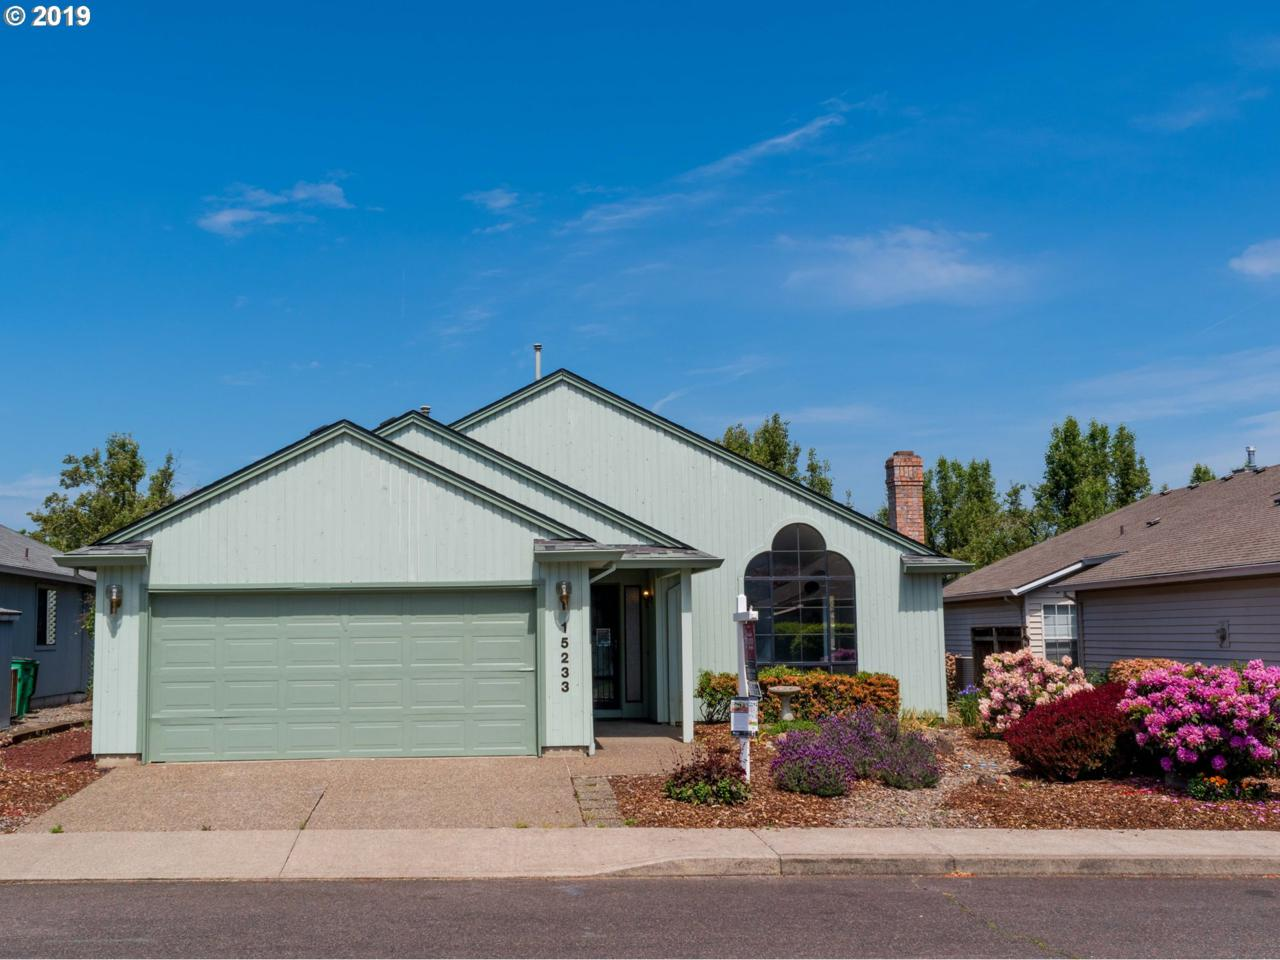 15233 Summerplace Dr - Photo 1